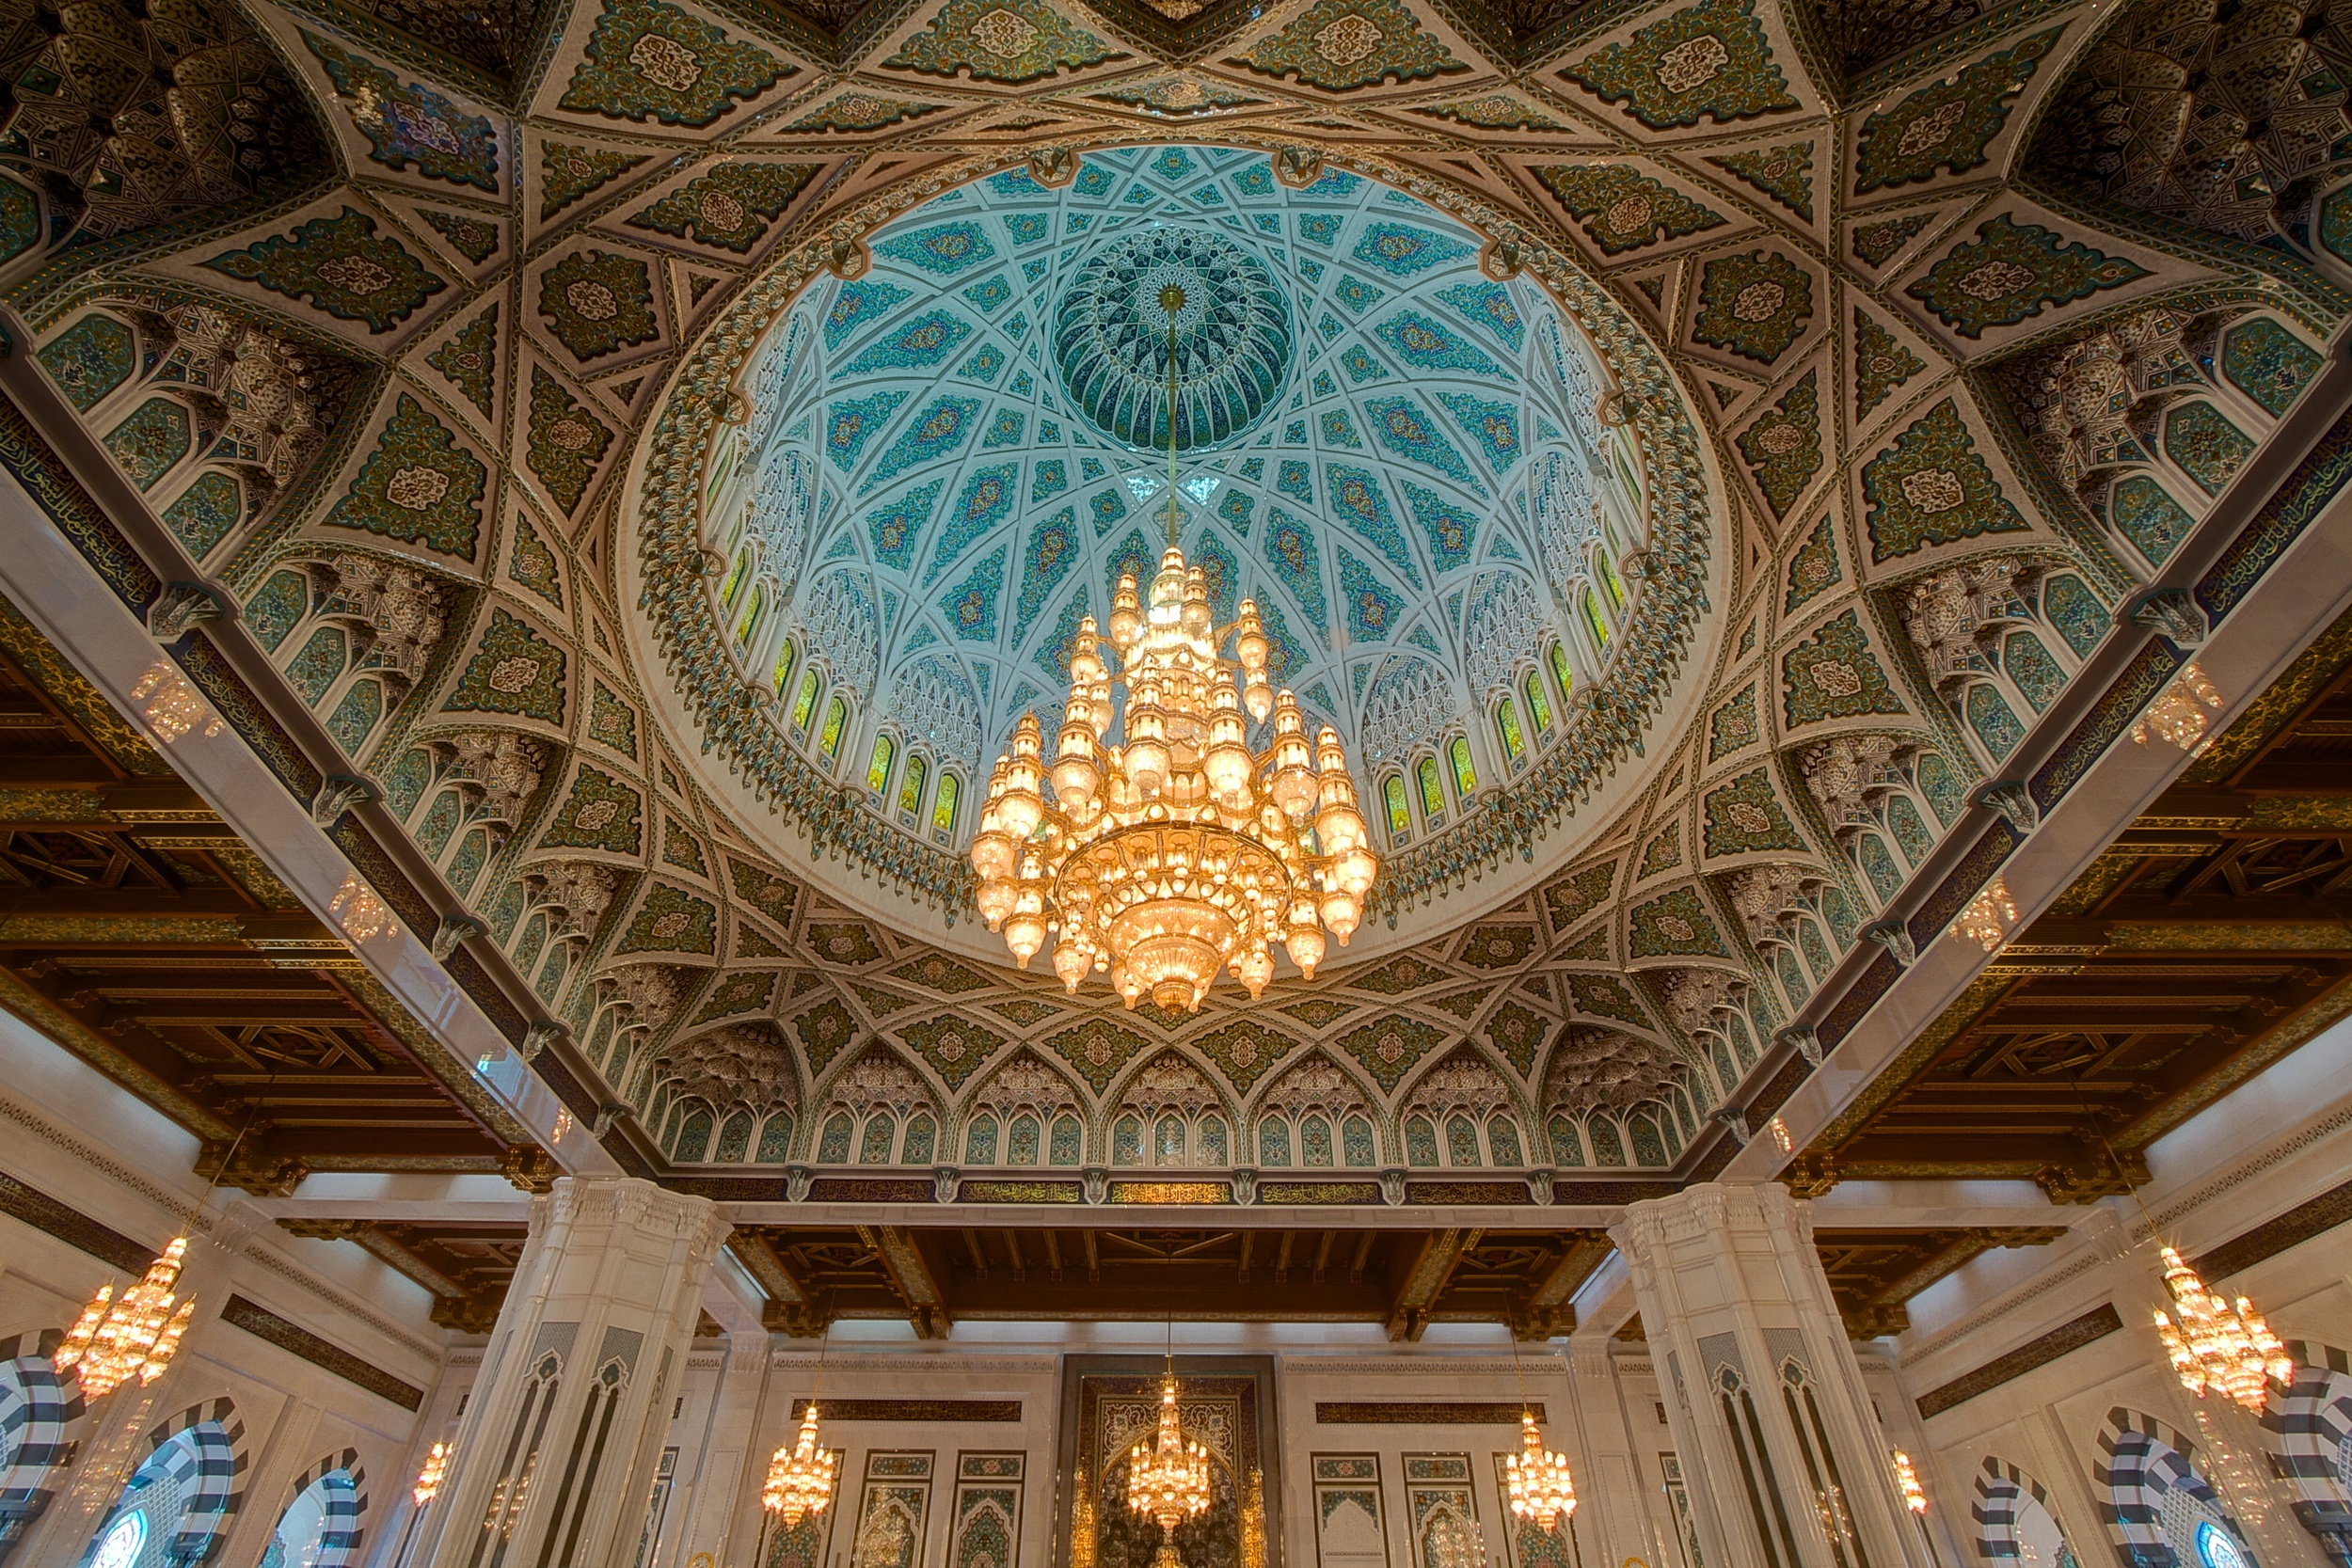 Sultan.Qaboos.Grand.Mosque.original.7014.jpg